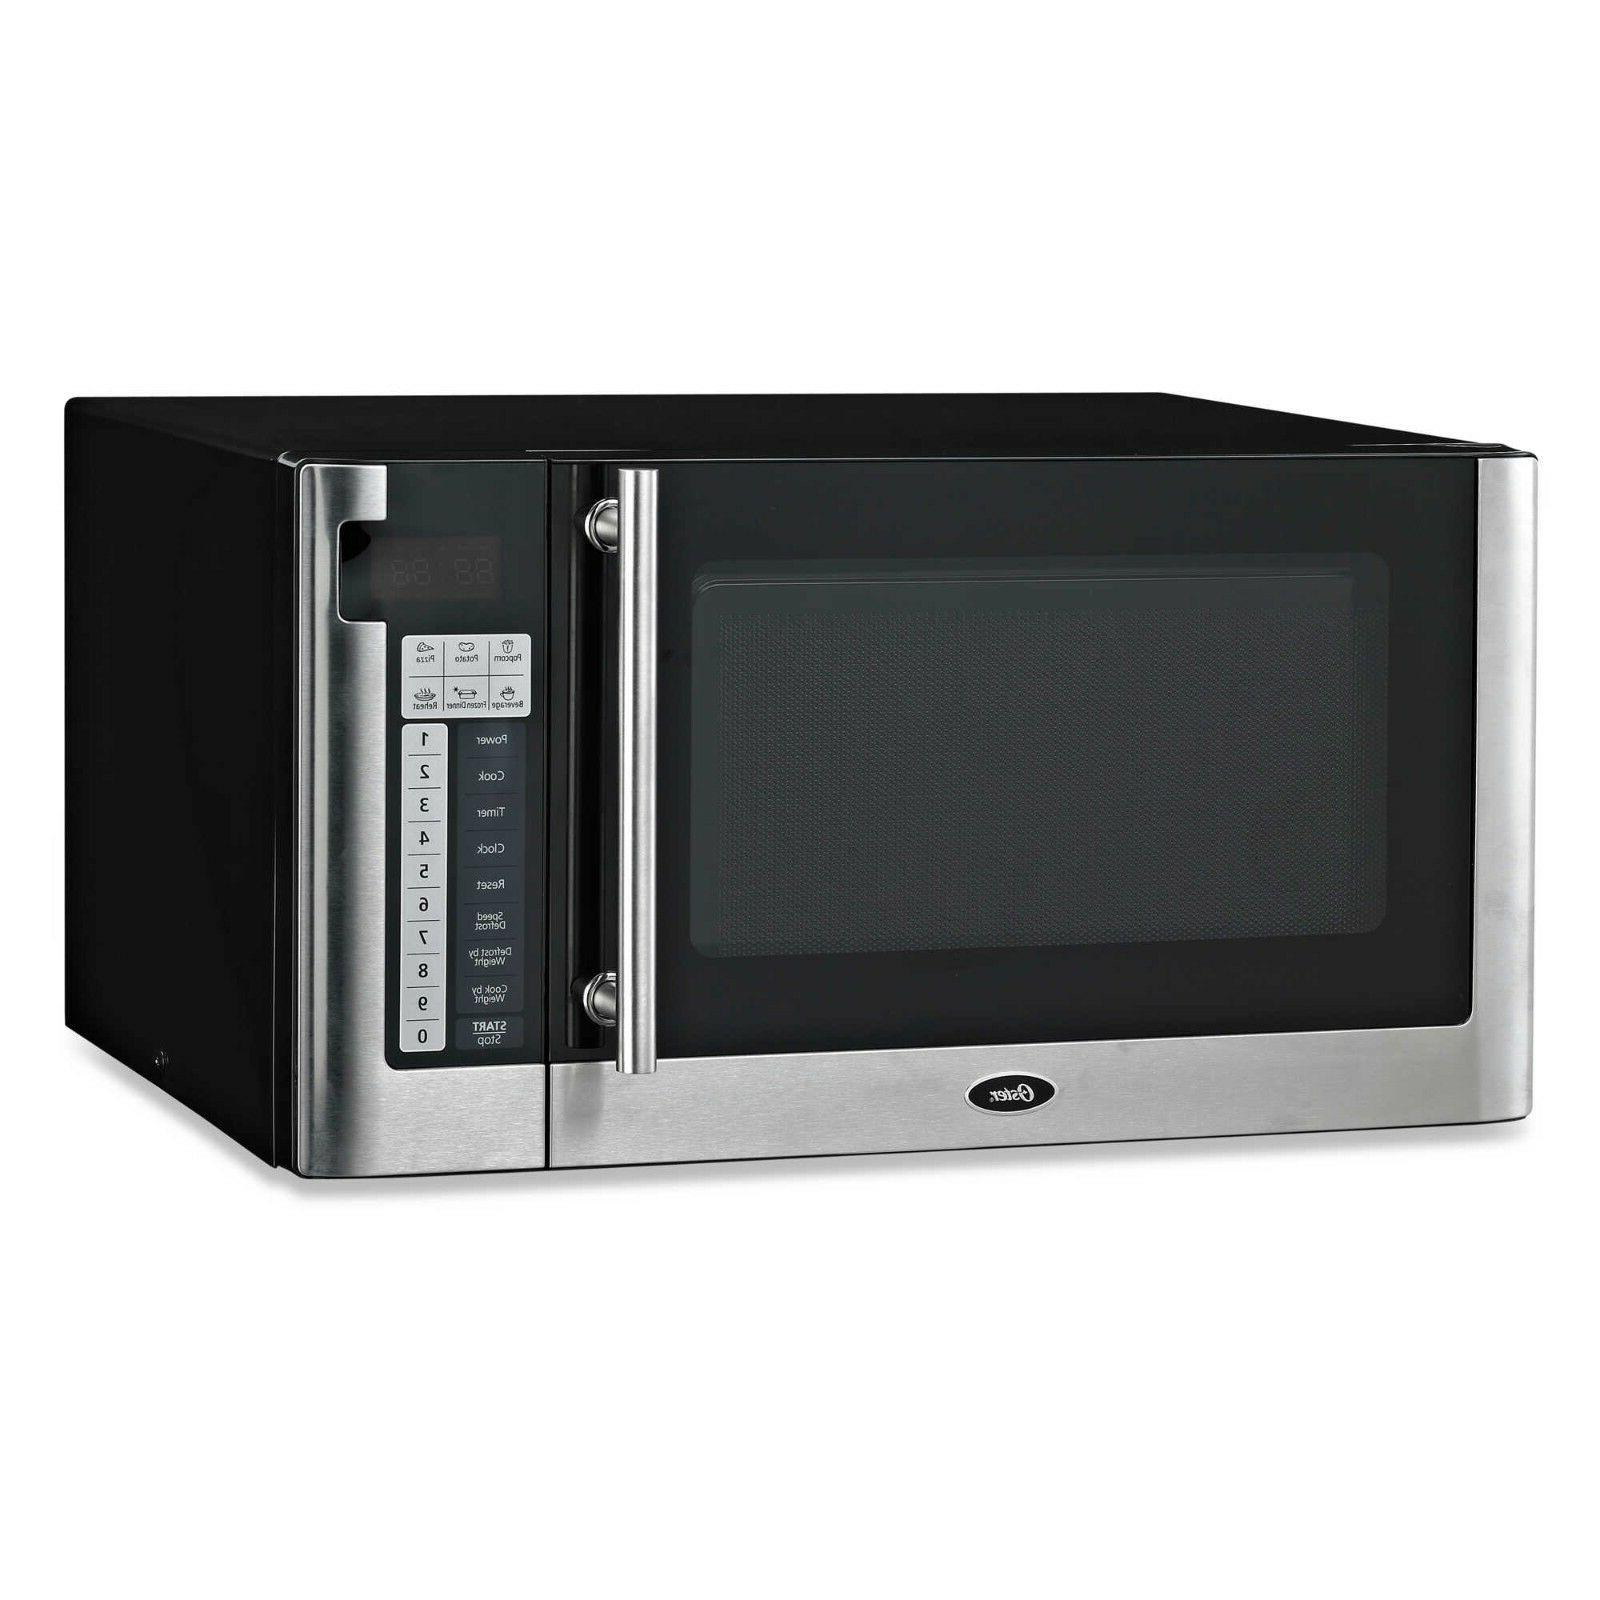 oster ogb61101 microwave oven